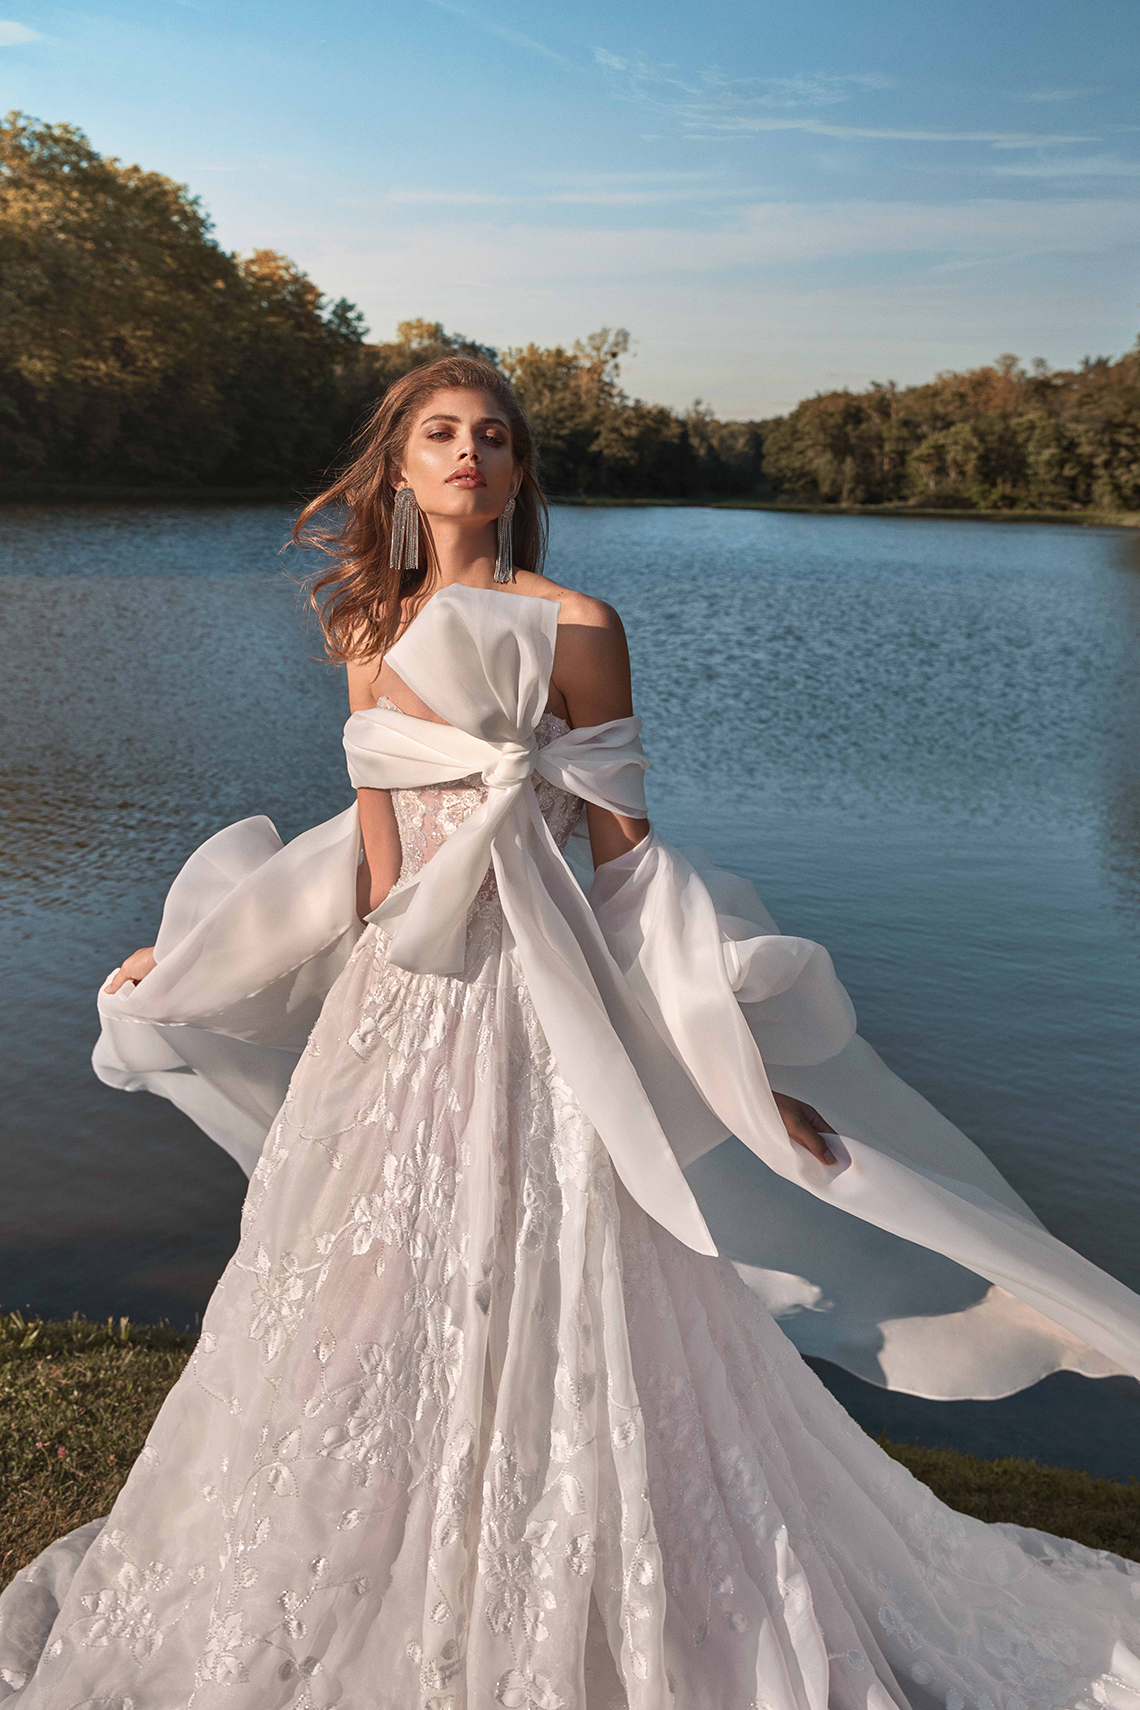 Galia Lahav Fancy White 2020 Wedding Dress Collection – Meghan with Coat